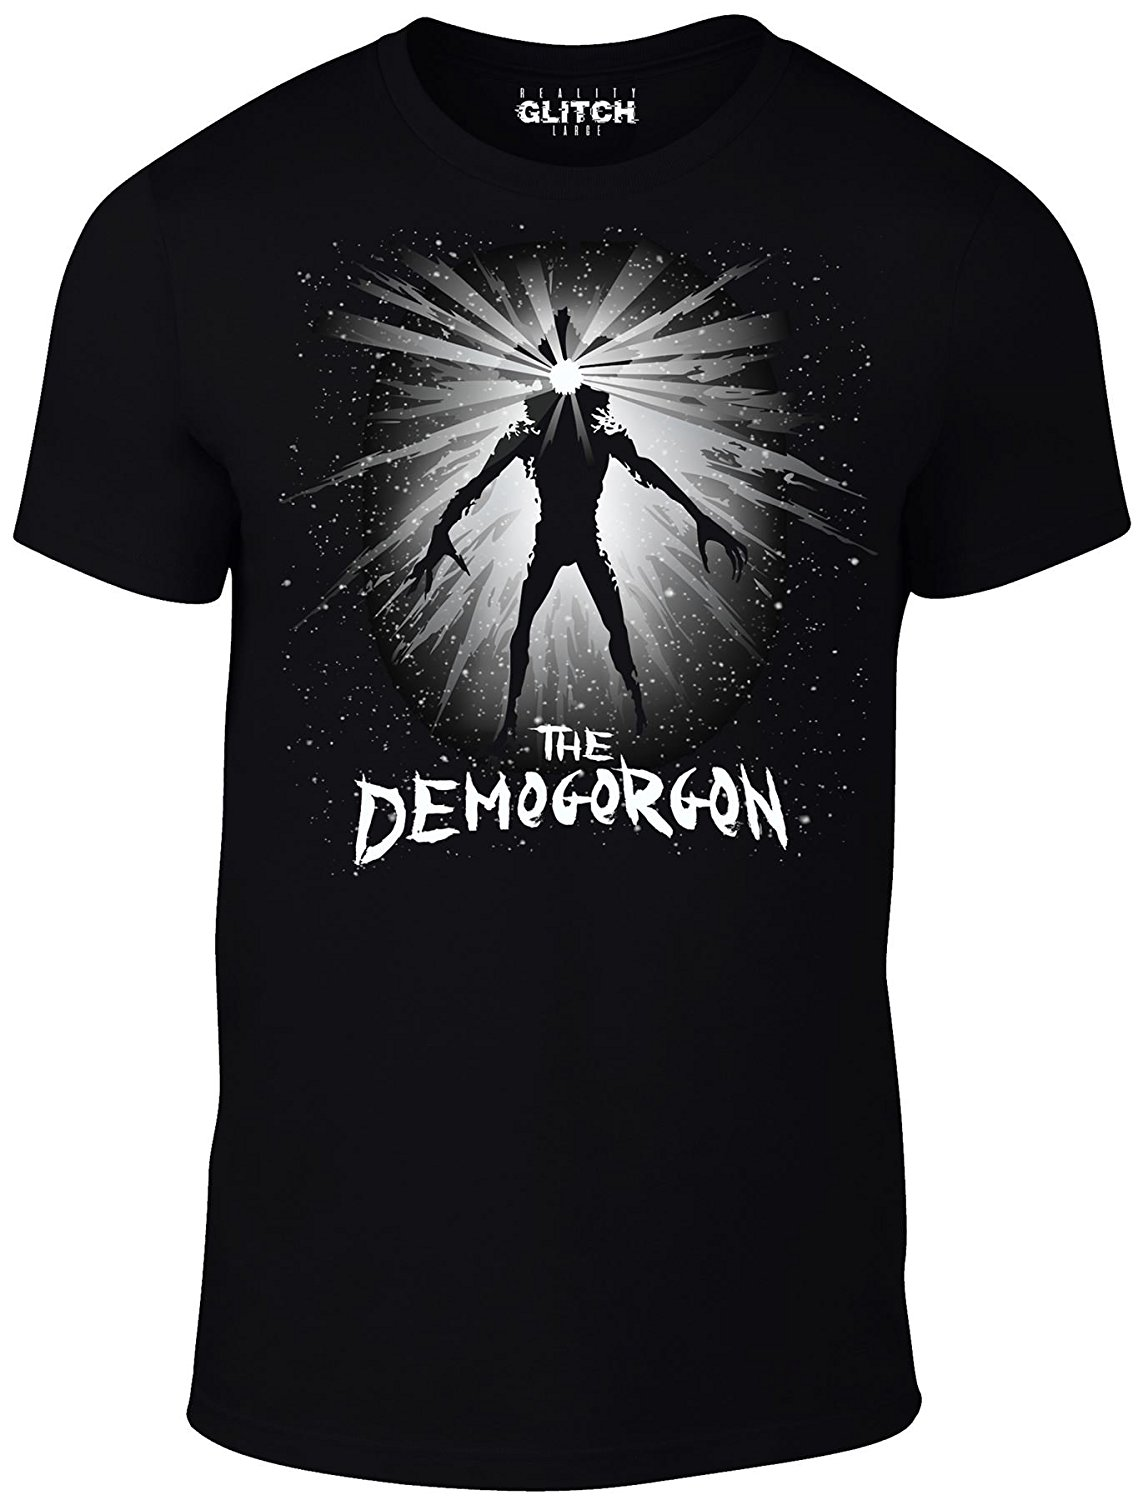 Reality Glitch Demogorgon Men's T-Shirt Casual Short Sleeve for Men Clothing Summer T Shirt Hipster O-Neck Causal Cool